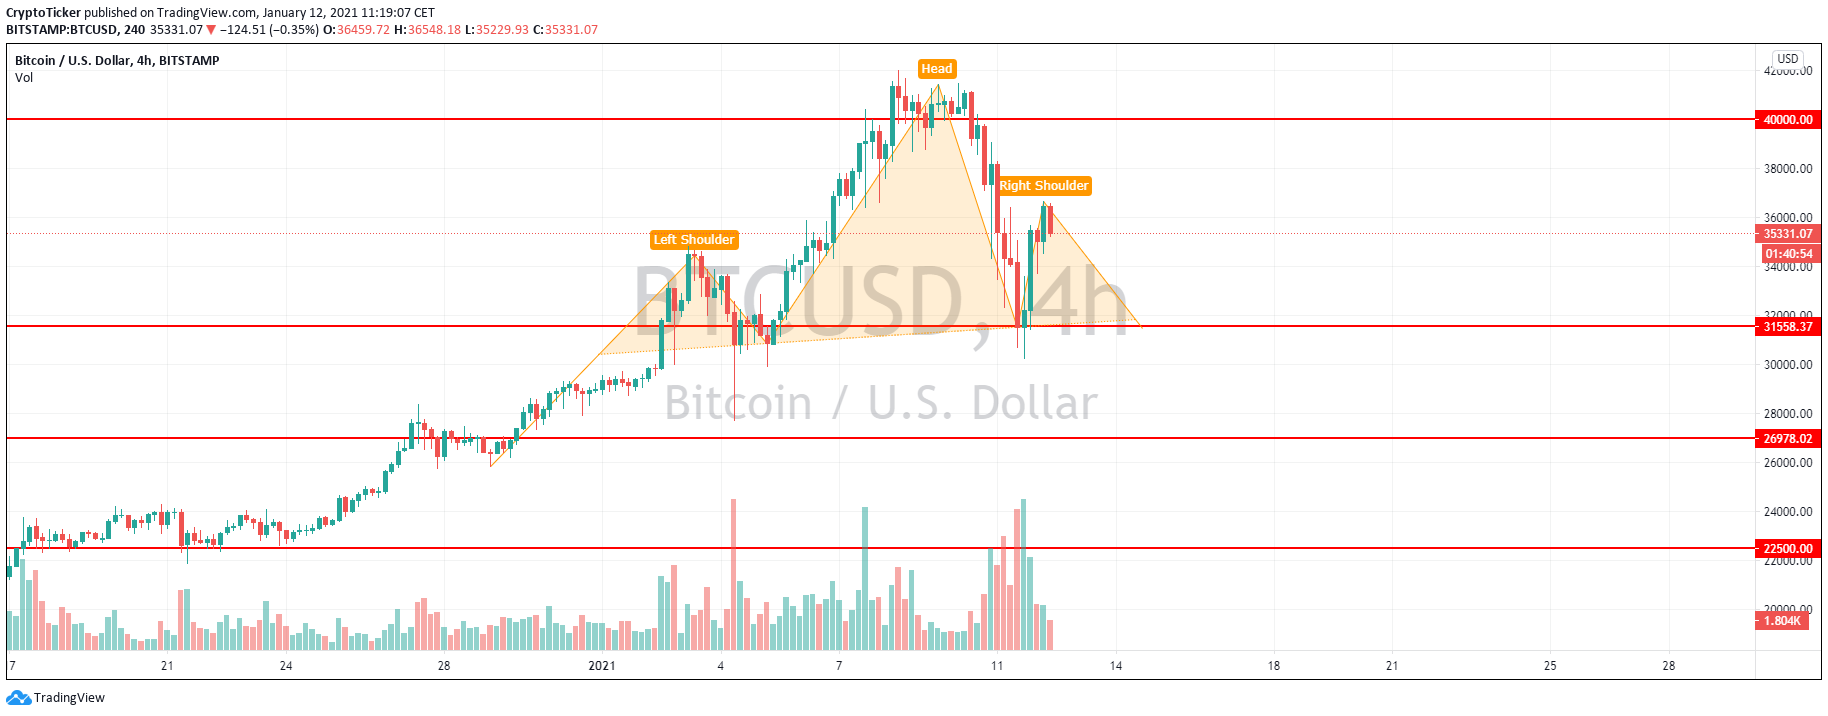 BTC/USD 4-hour chart showing a Head & Shoulder formation